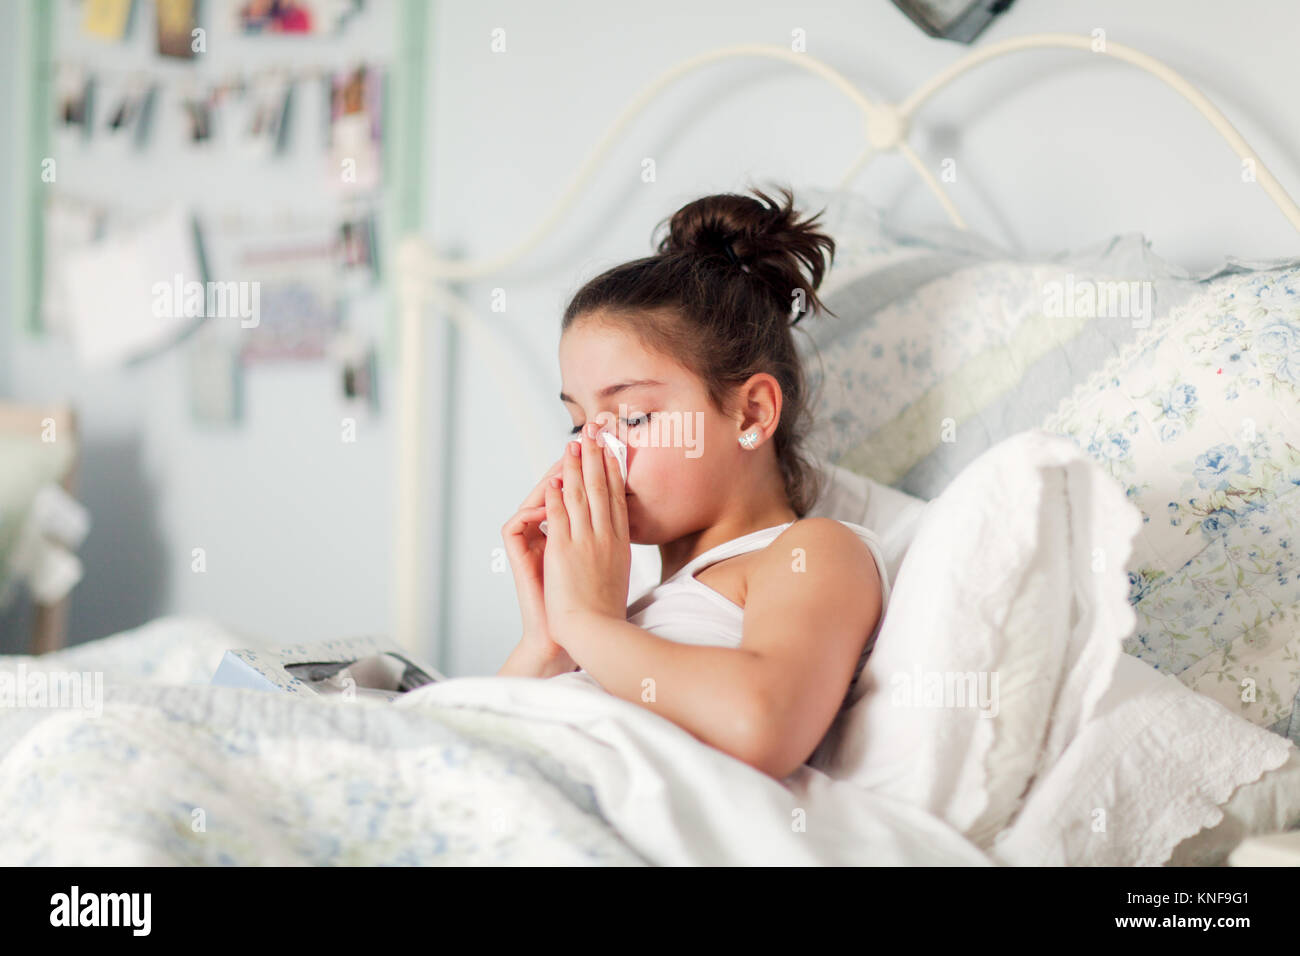 Girl in bed blowing nose on handkerchief - Stock Image